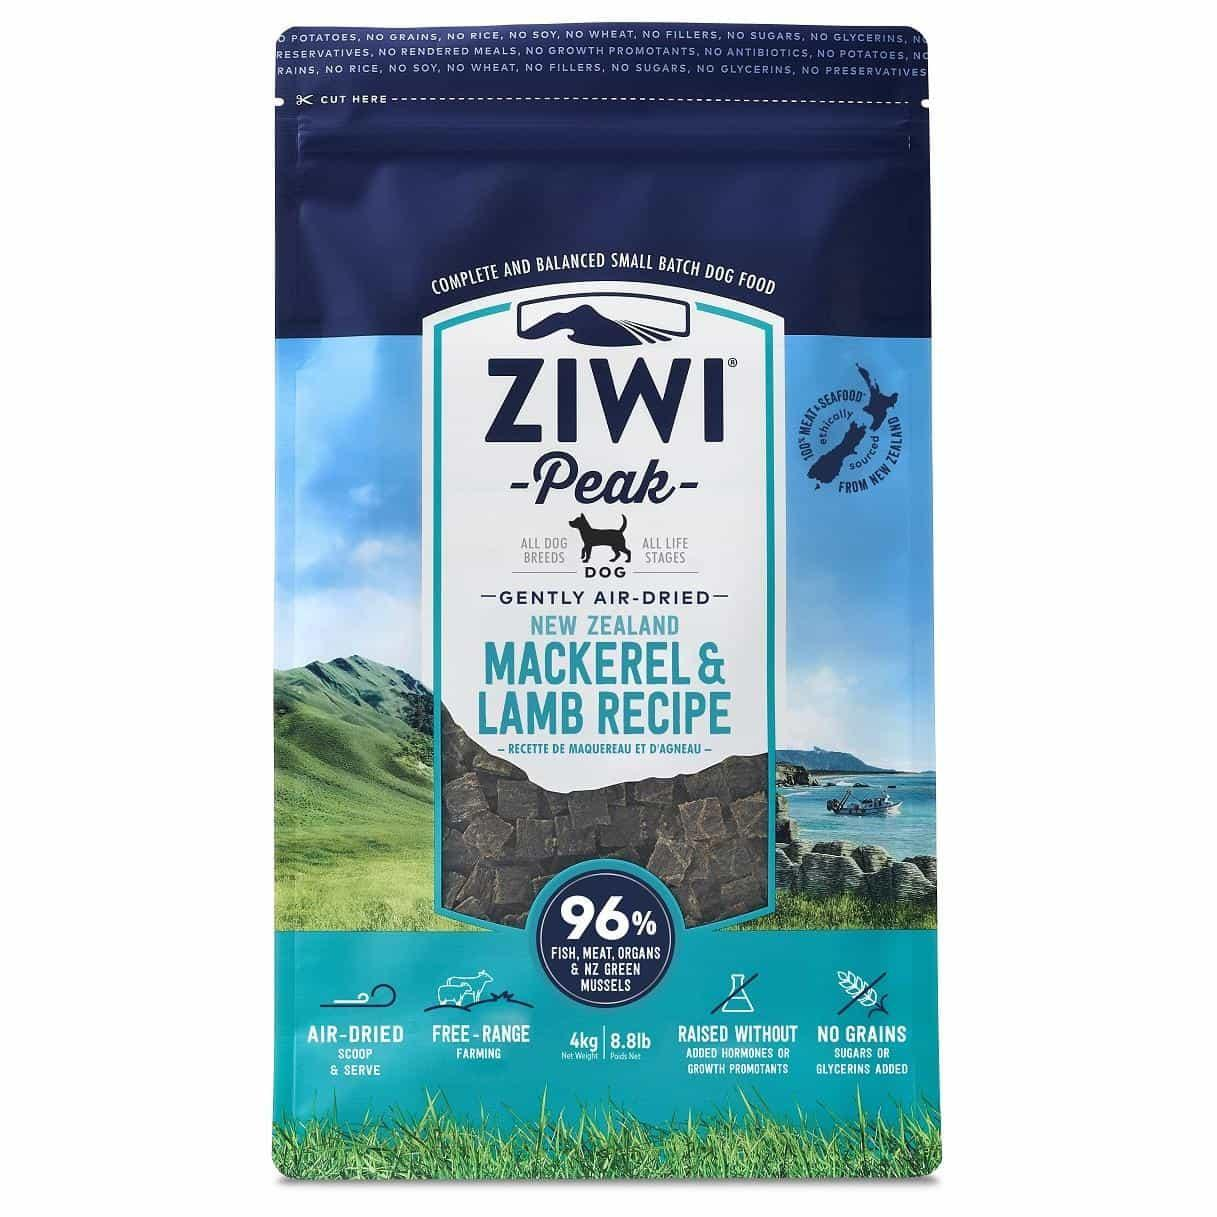 ZiwiPeak Ziwi Peak Air Dried Mackerel & Lamb Dog Food